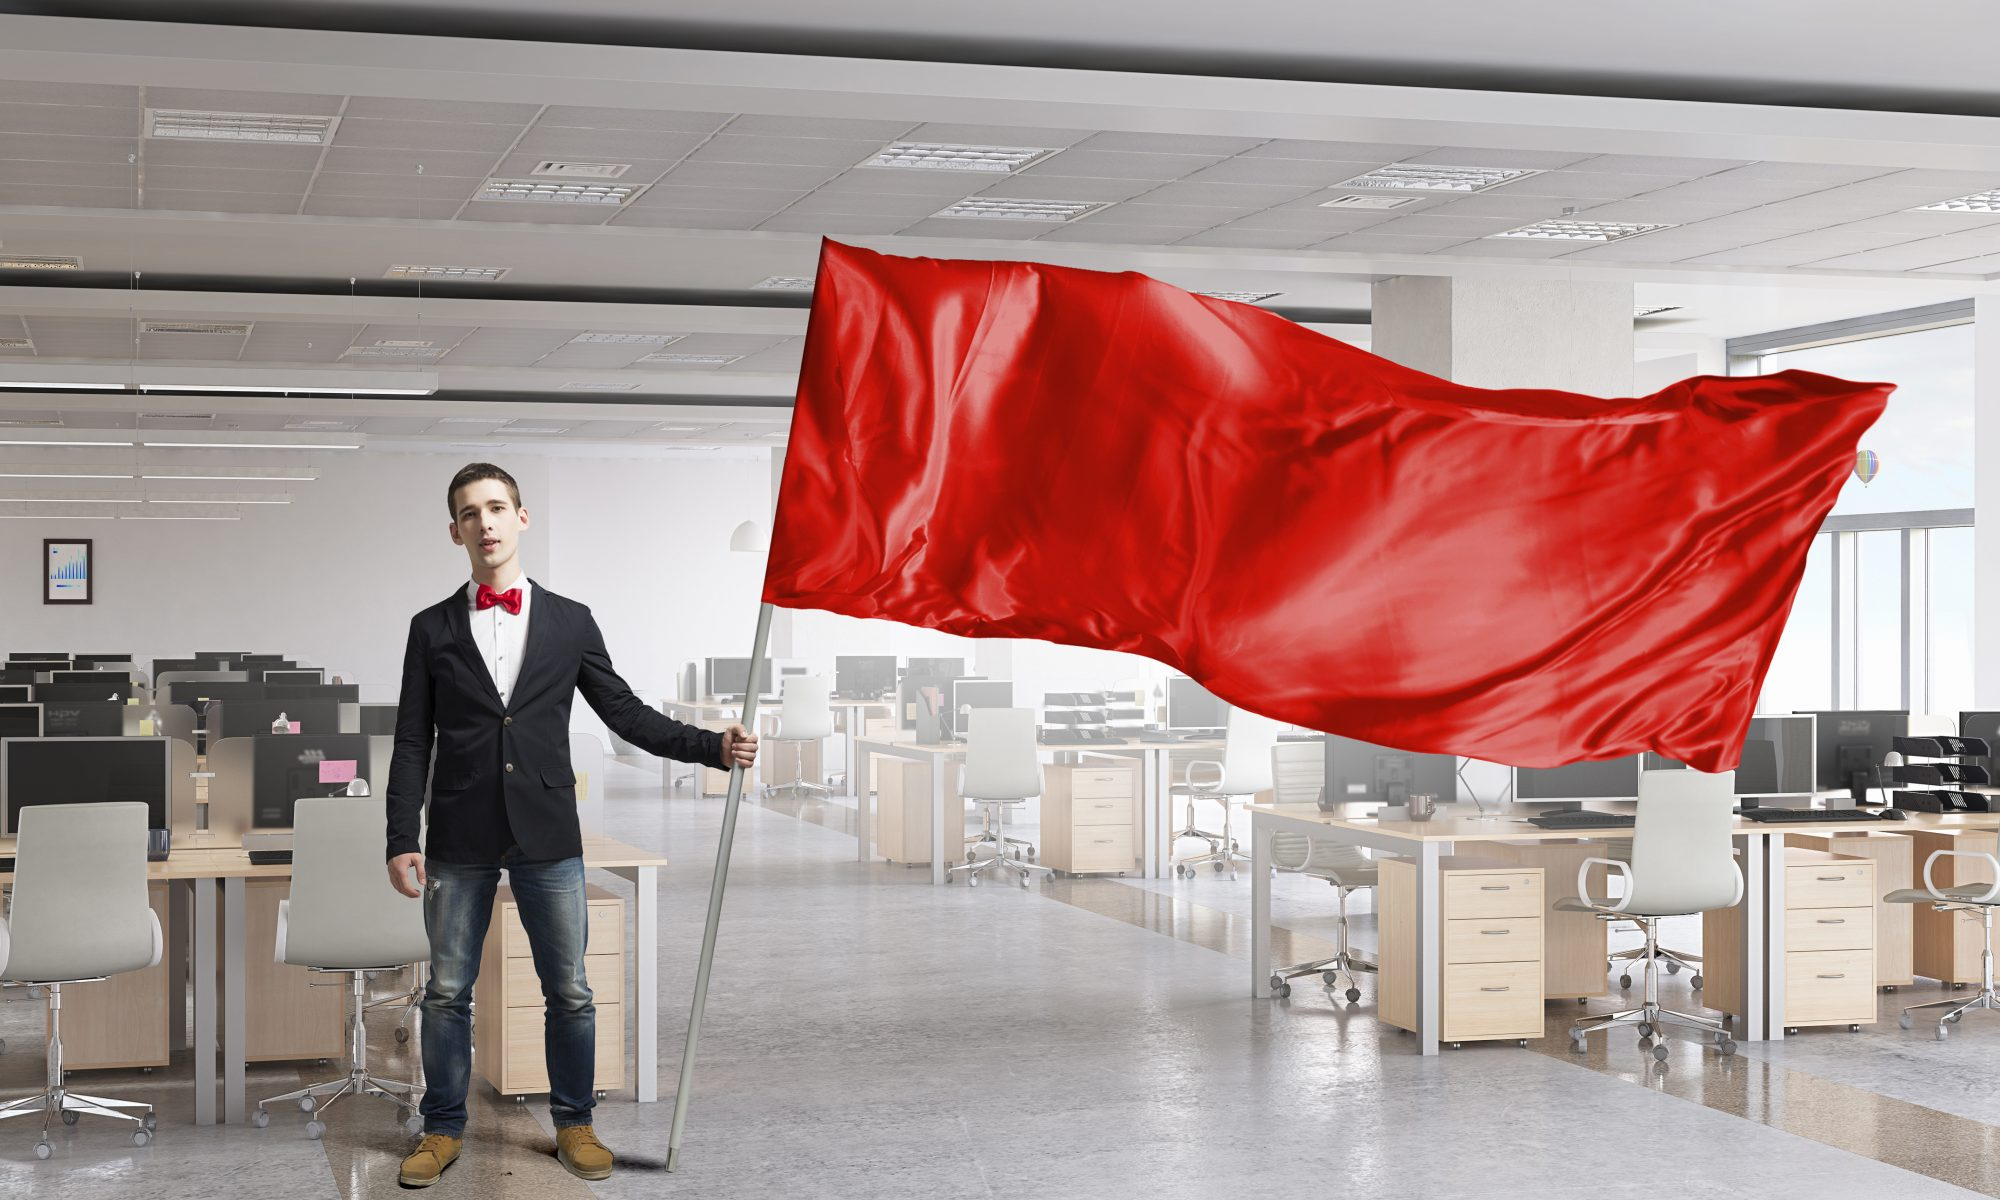 Workplace Red Flags